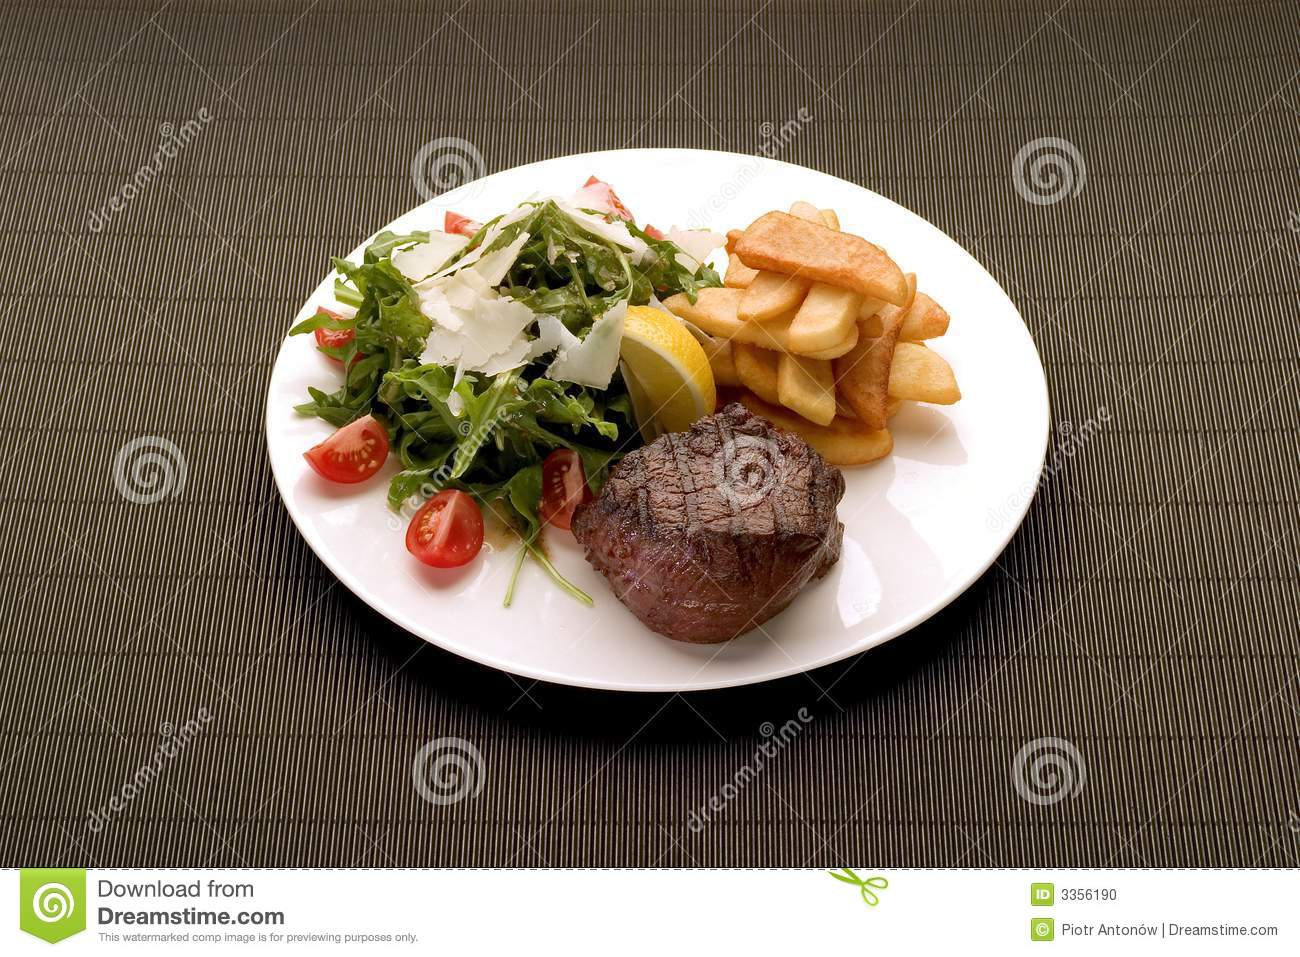 Grillad steak